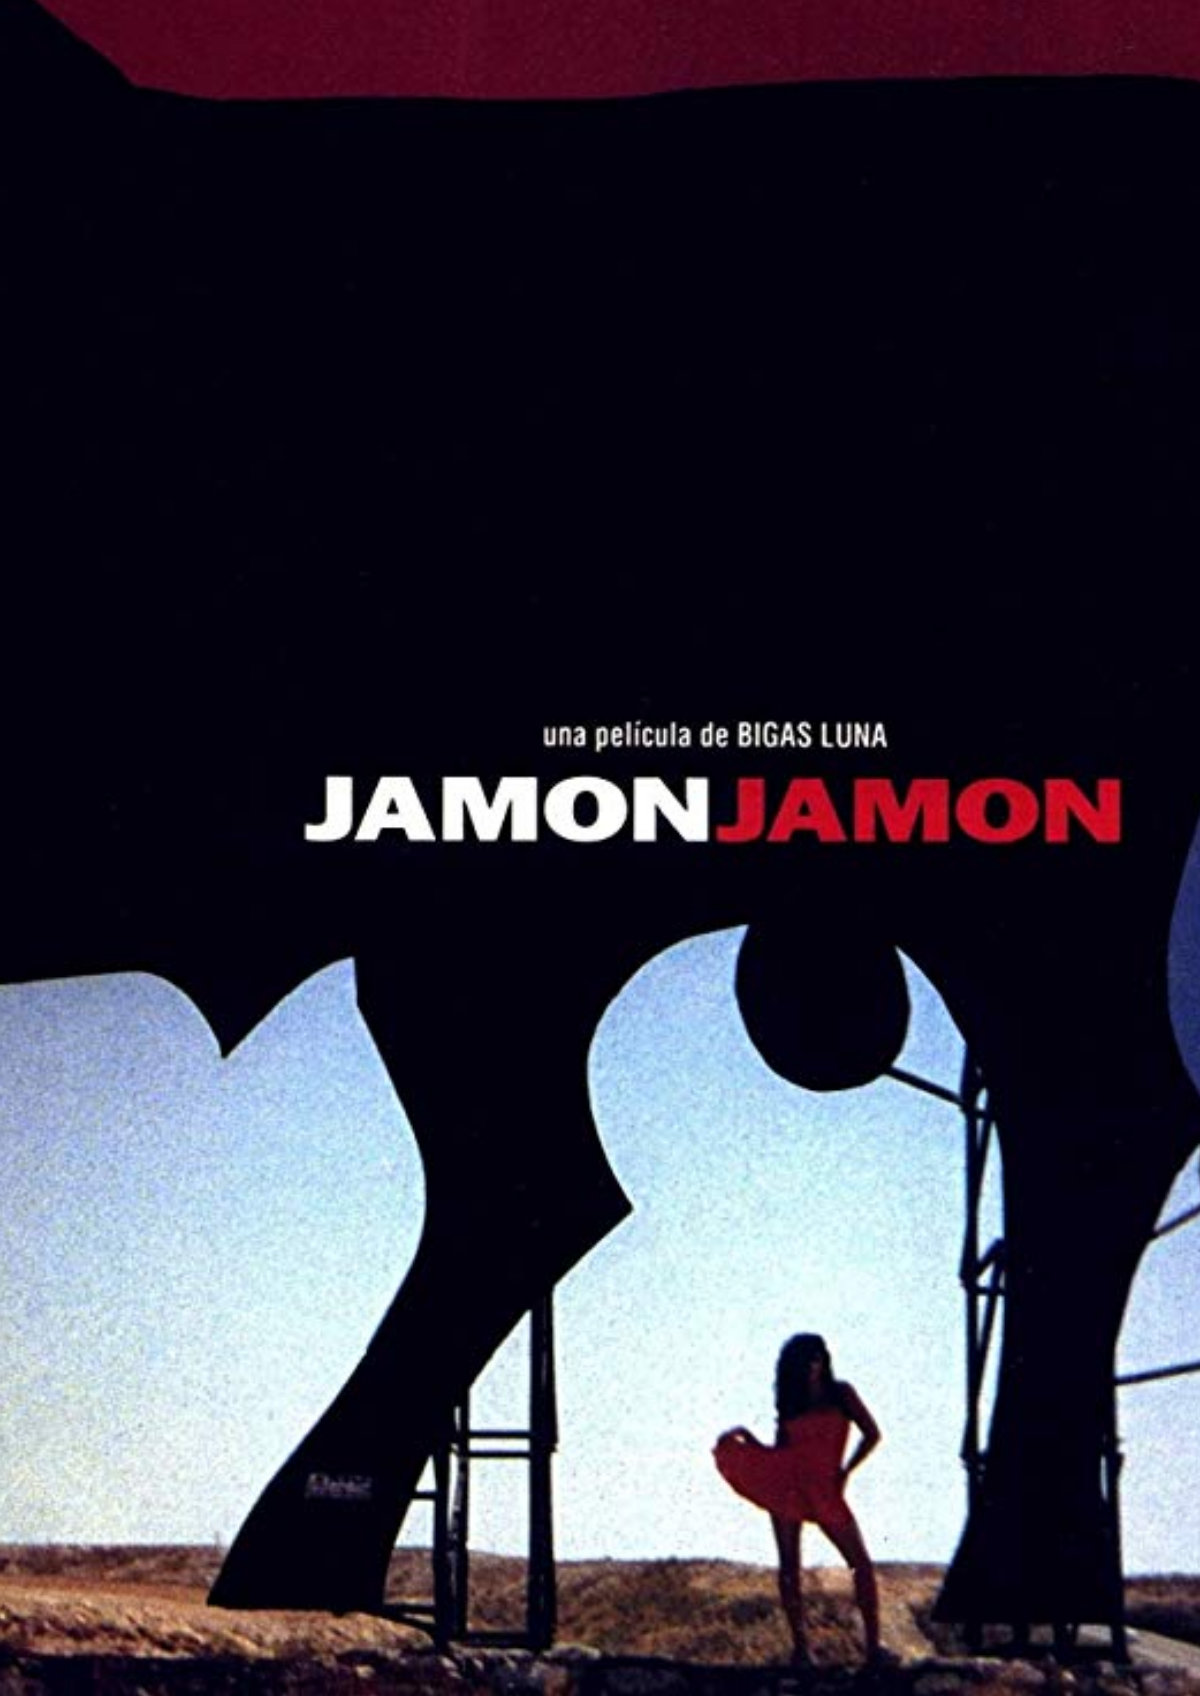 'Jamón Jamón' movie poster